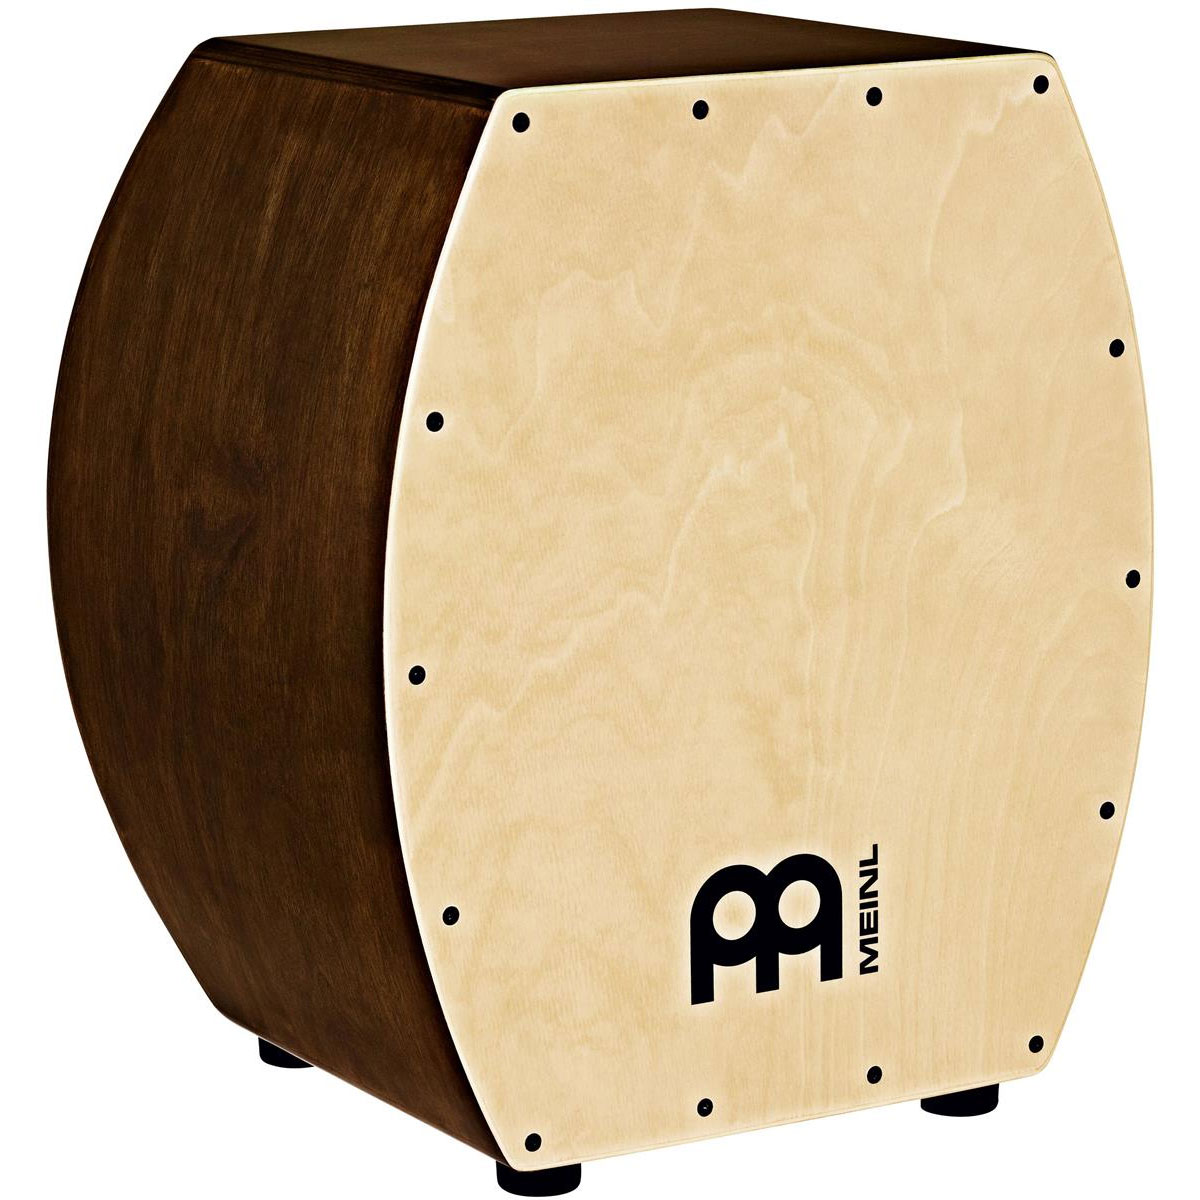 Meinl Jumbo Arch Bass Cajon in Vintage Wine Barrel